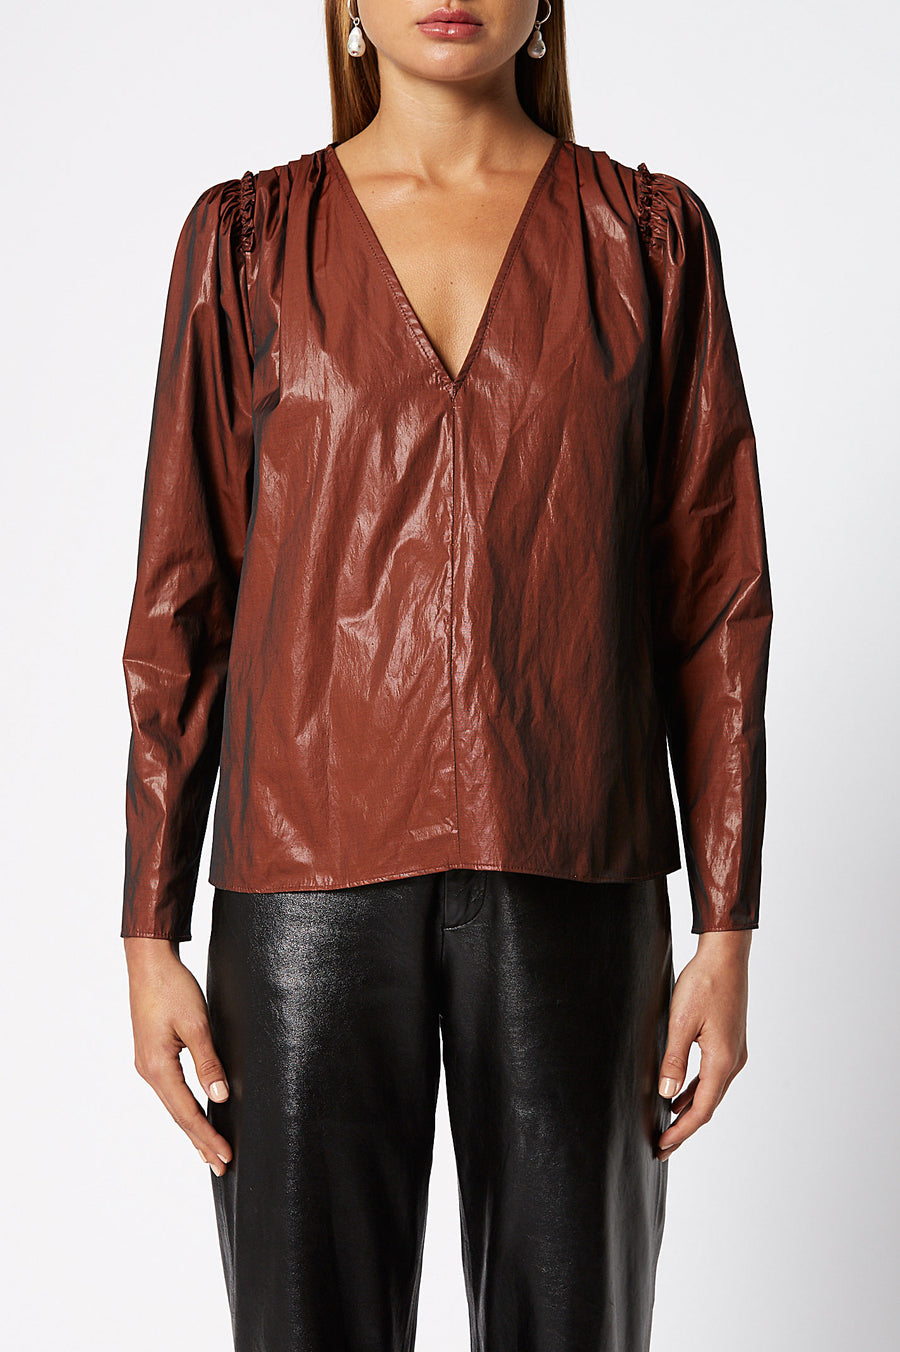 Glossy Blouse is long sleeve with a low V-neckline, color bronze